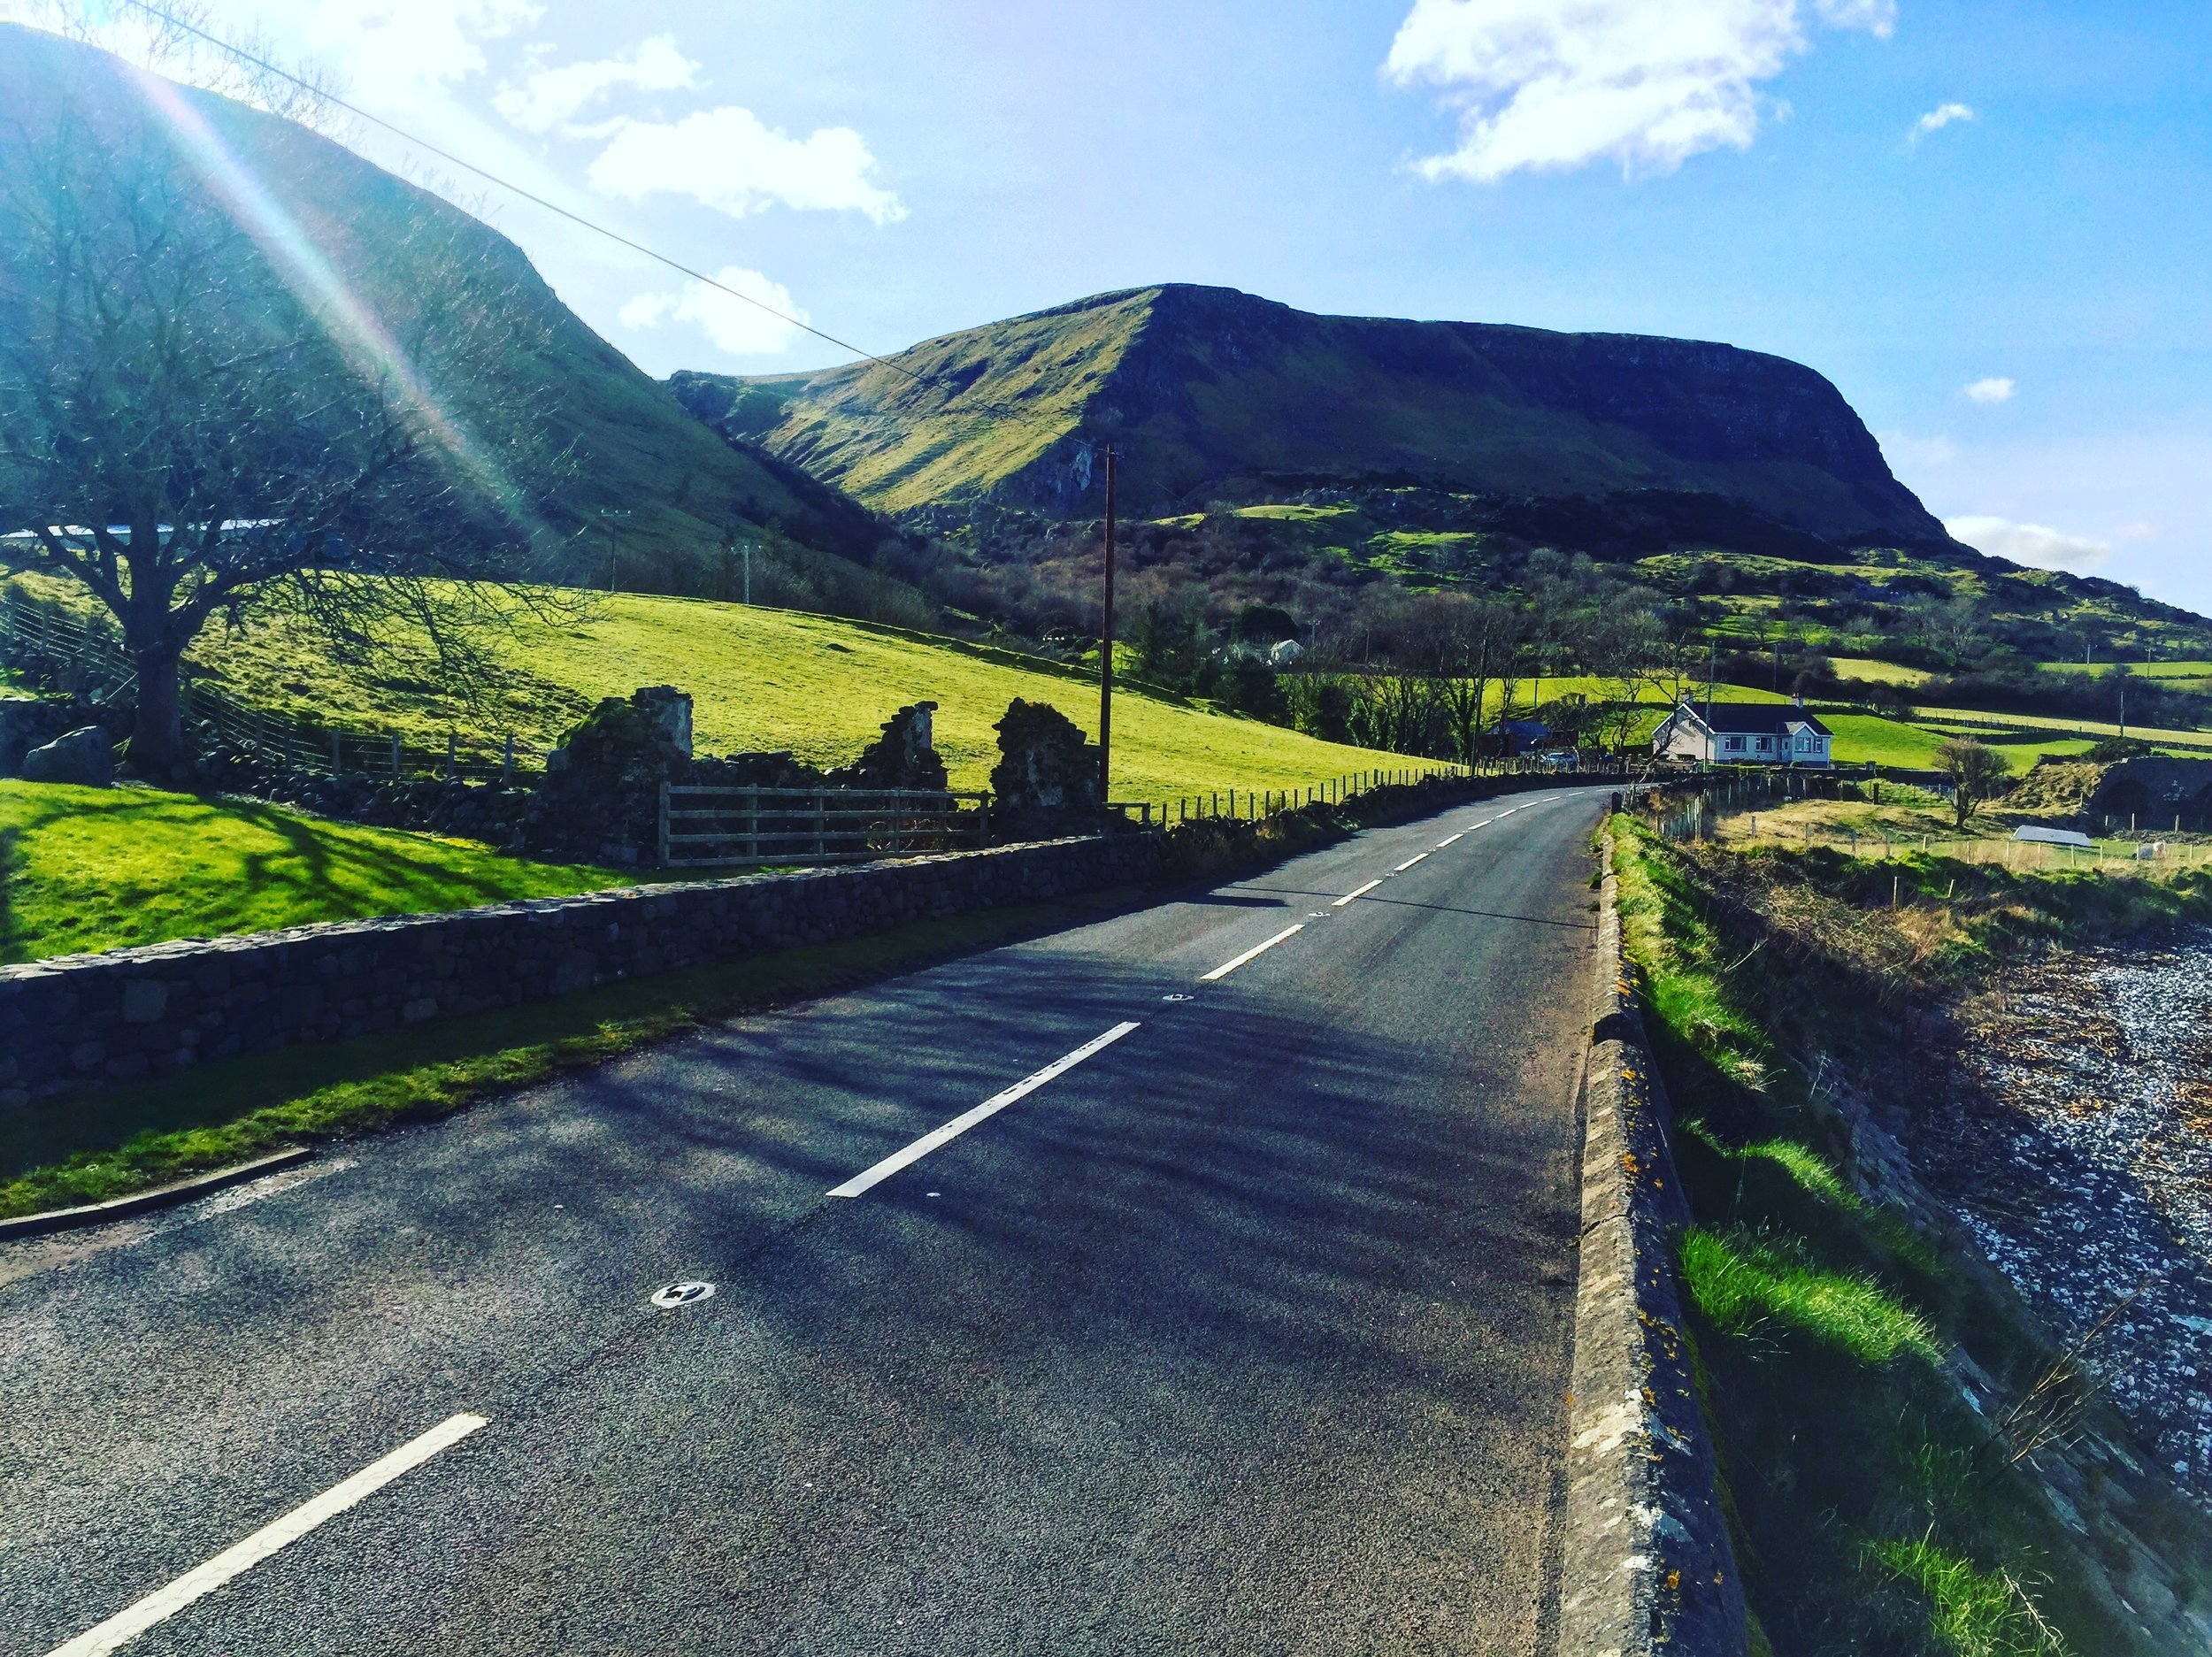 mountains_waterfoot_green_more_gnome_ardclinis_church_ruins_fairy_tree_thorn_roadtrip_causeway_antrim_coast_ni_explorer_niexplorer_northern_ireland_blog.jpg